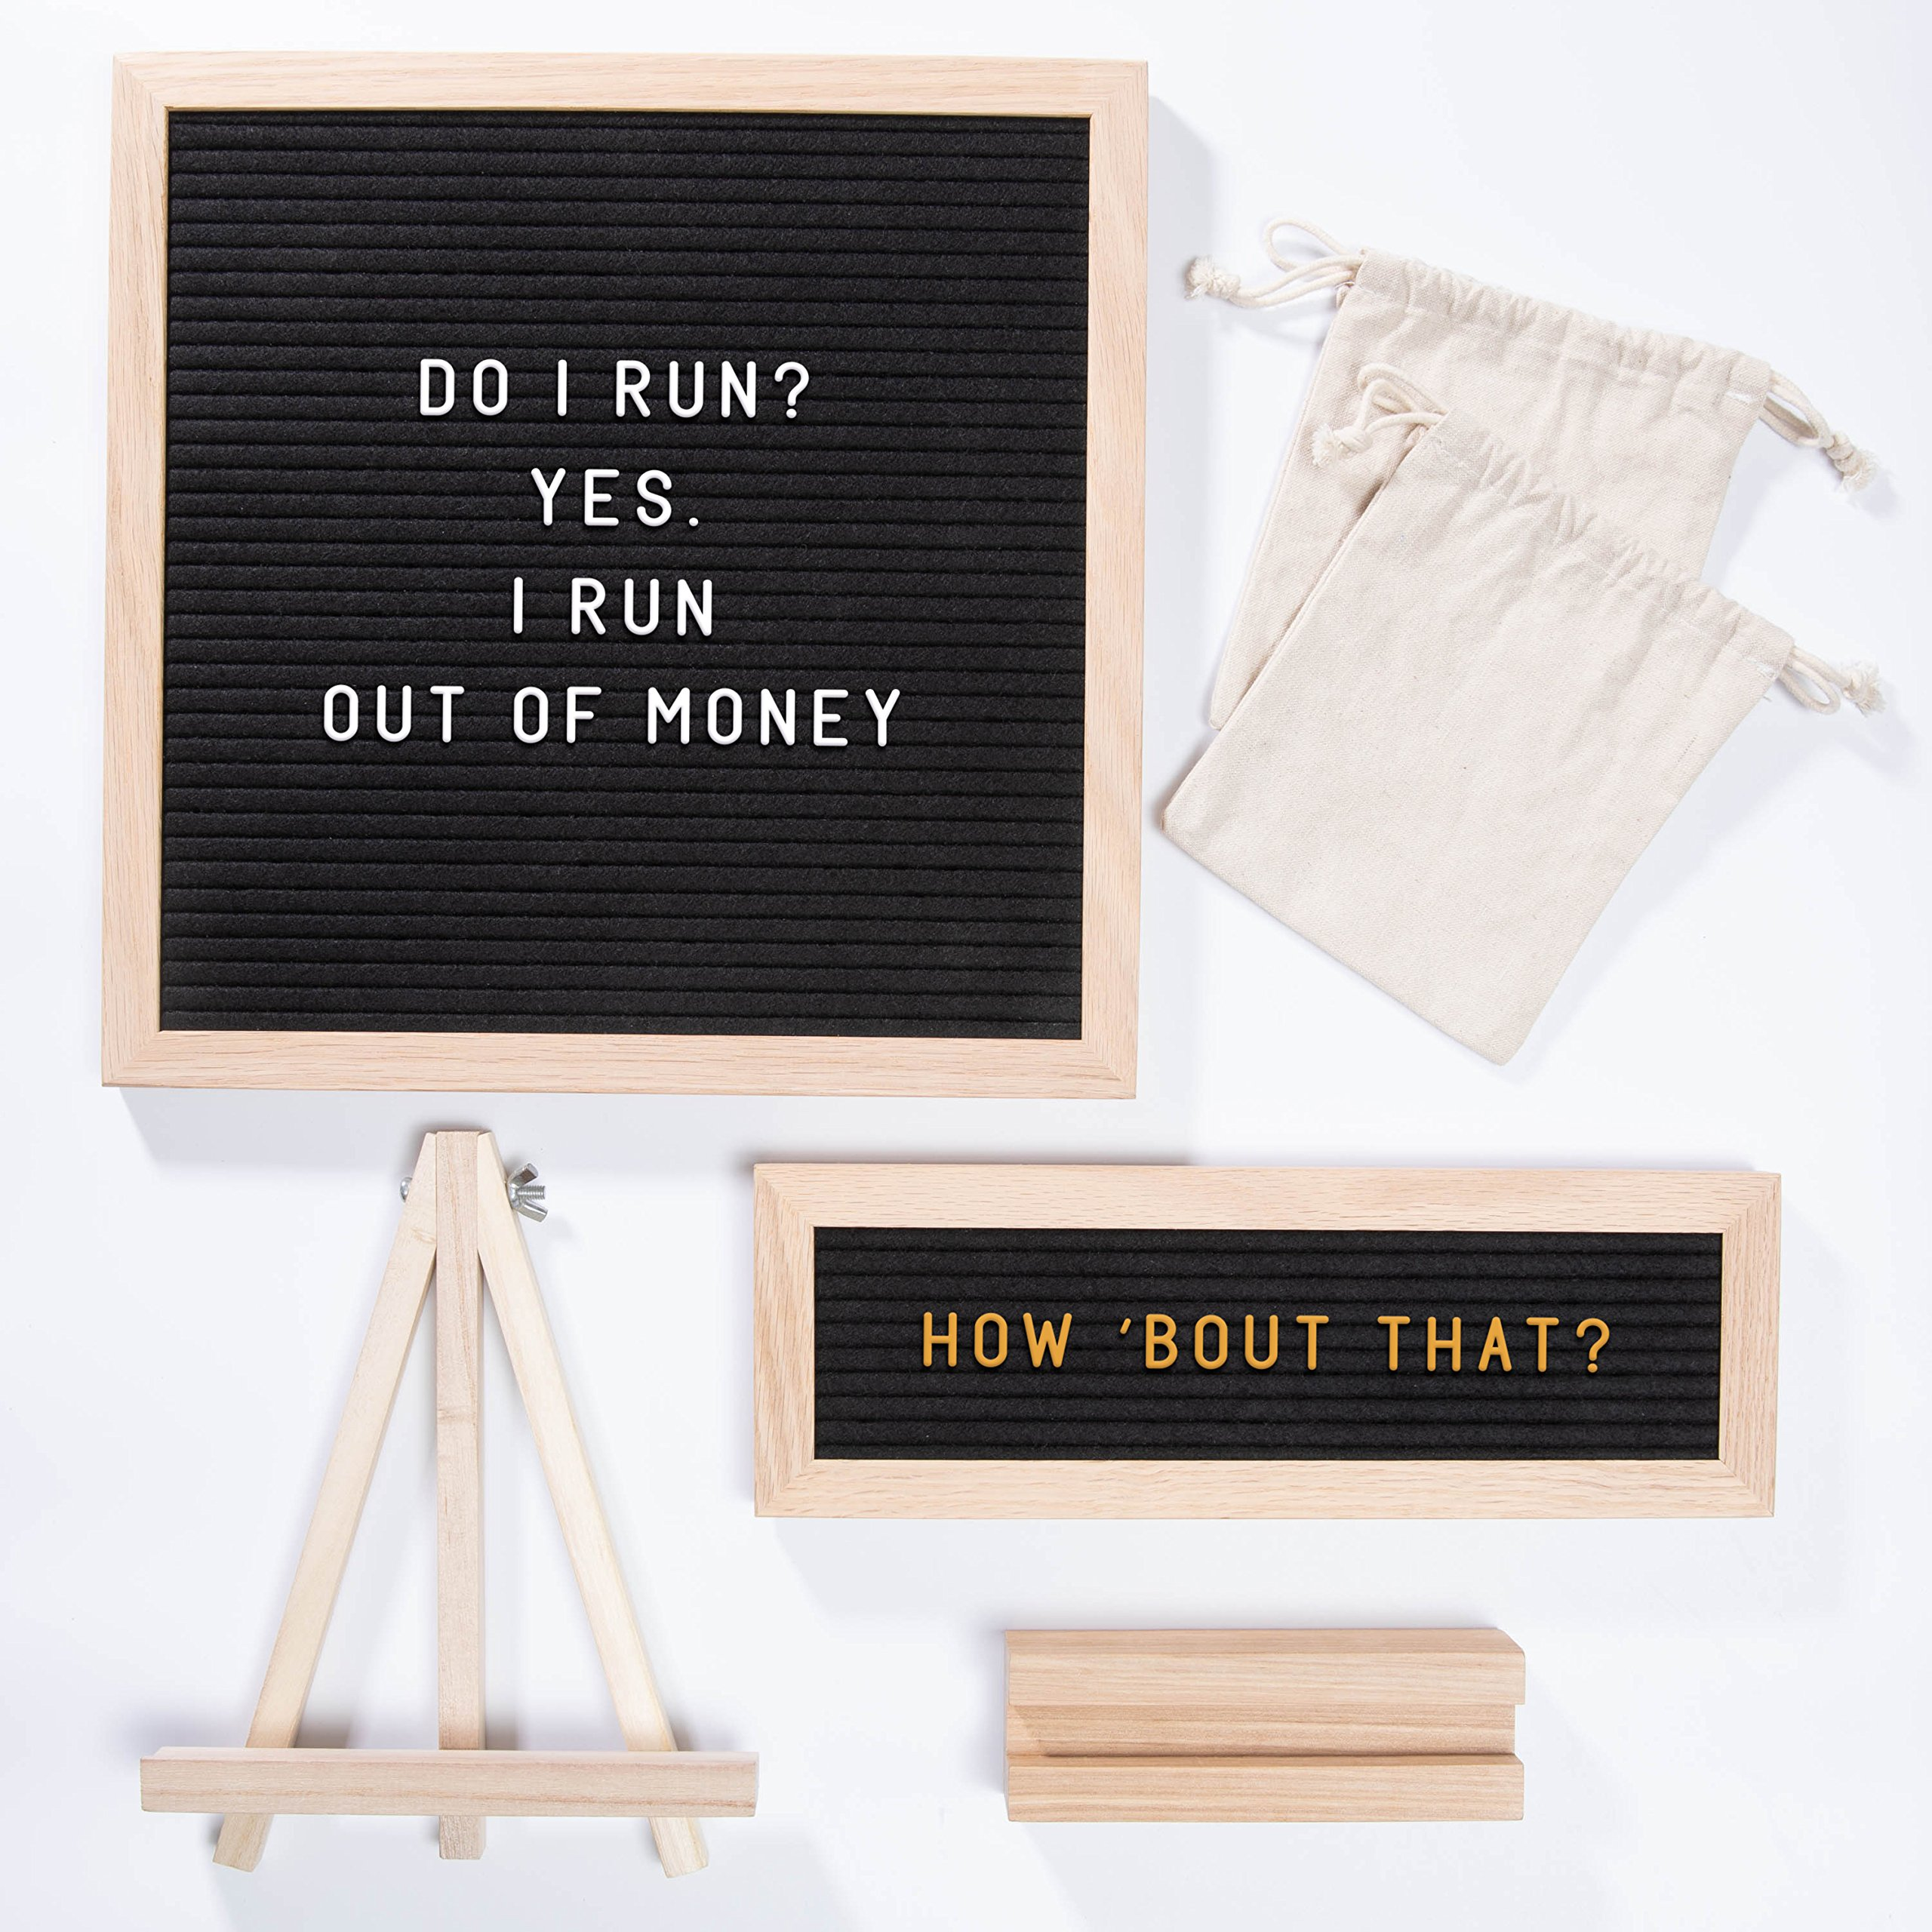 """ETHONS Felt Letter Board Super Pack - 2 Quality Letter Boards 12""""x12"""" & 12""""x4"""" - Personalize with 640 Characters in White & Gold - Gift-Ready Display Boards - Includes 2 Wood Stands and 2 Canvas Bags by ETHONS (Image #8)"""